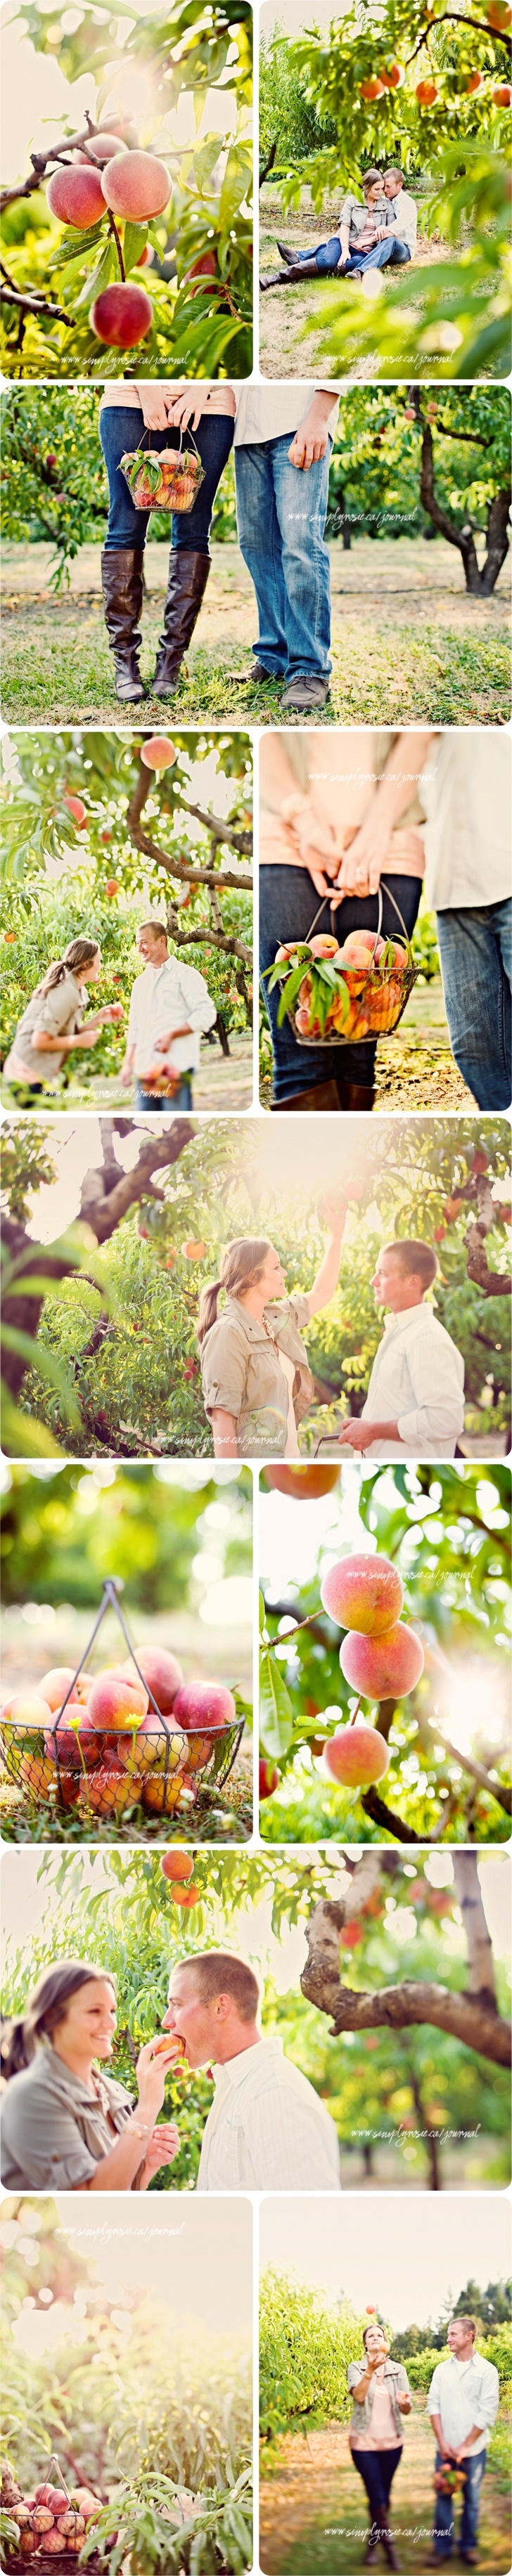 Amazing peach orchard shoot.  I want the color feeling to be exactly like this. :)